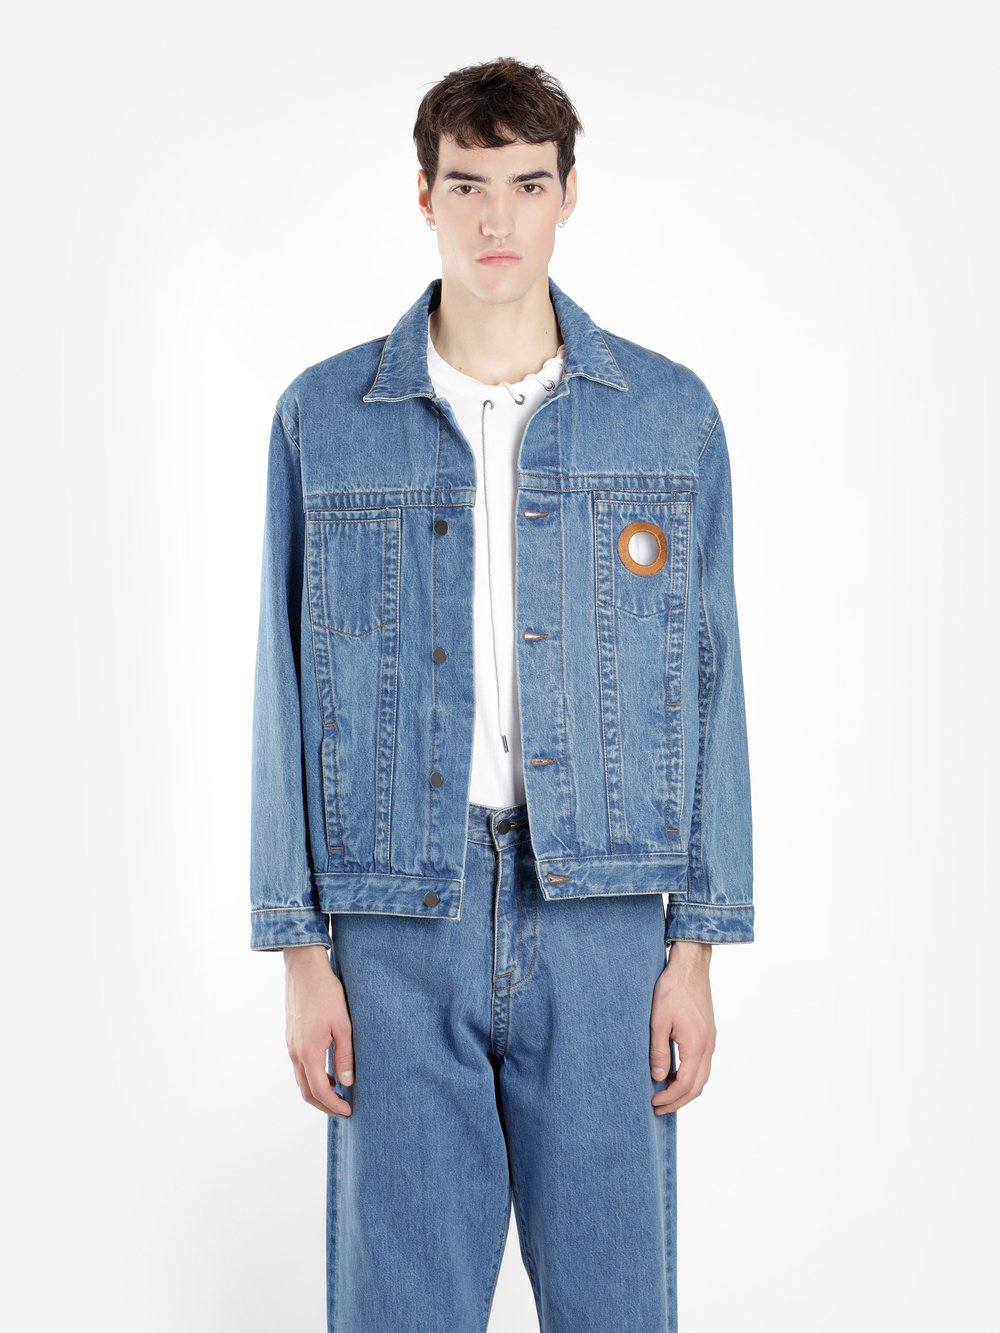 CRAIG GREEN Embroidered Denim Trucker Jacket in Blue